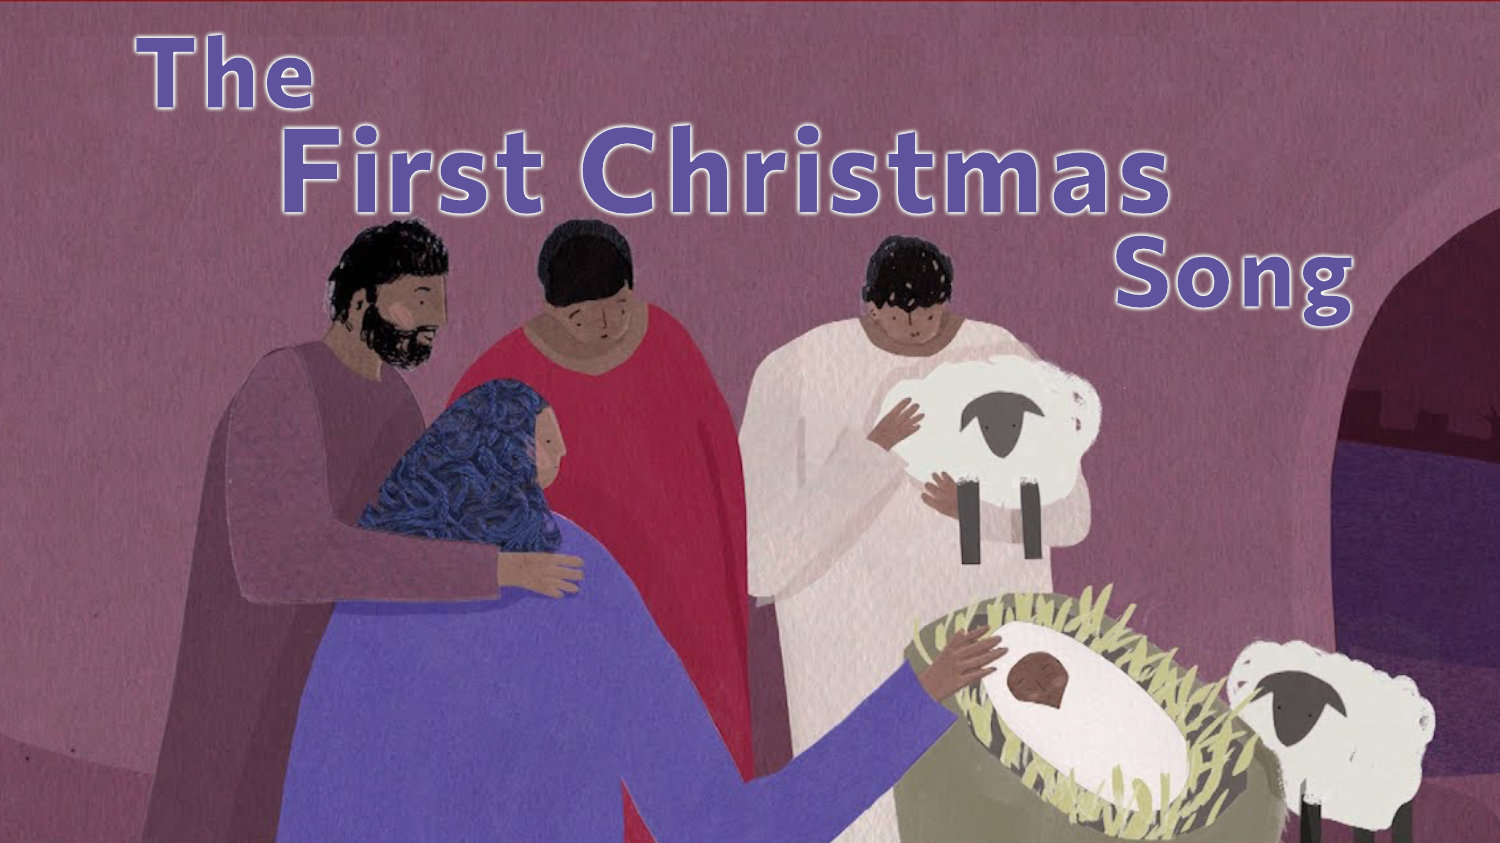 The First Christmas Song